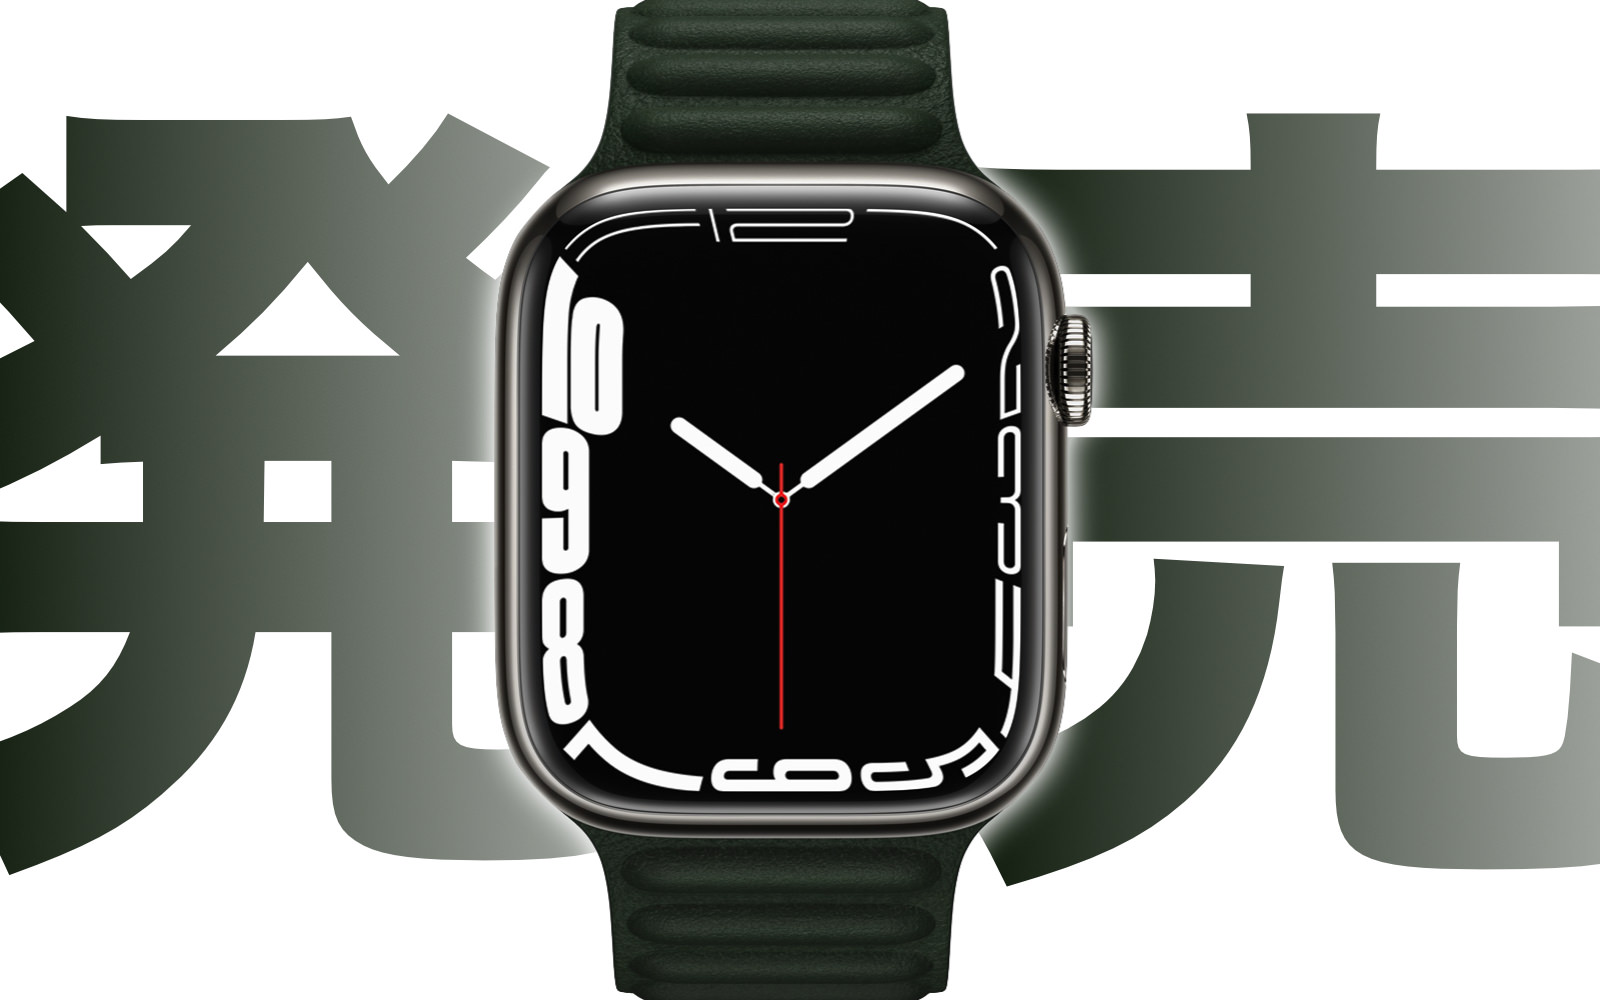 AppleWatchSeries7 now on sale